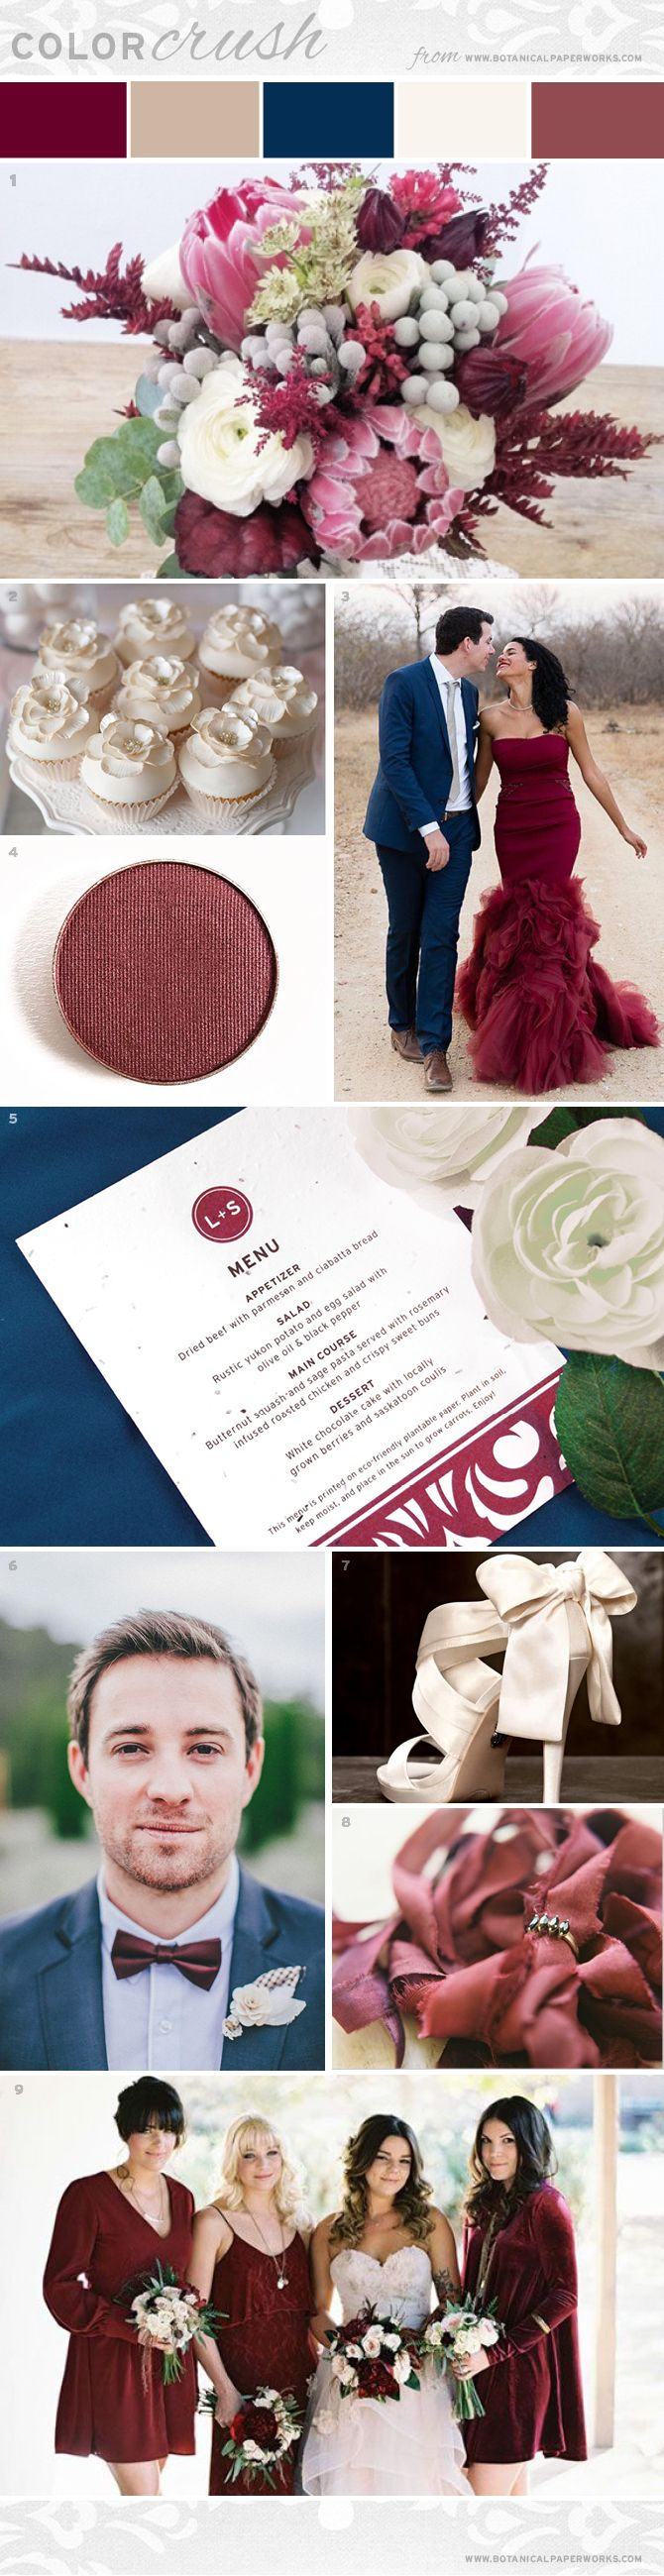 Rich, elegant and romantic, the Marsala, Cream and French Blue color pallete is classically beautiful and perfect for all wedding styles. #weddings #marsala #weddinginspiration #pantone #bridetobe